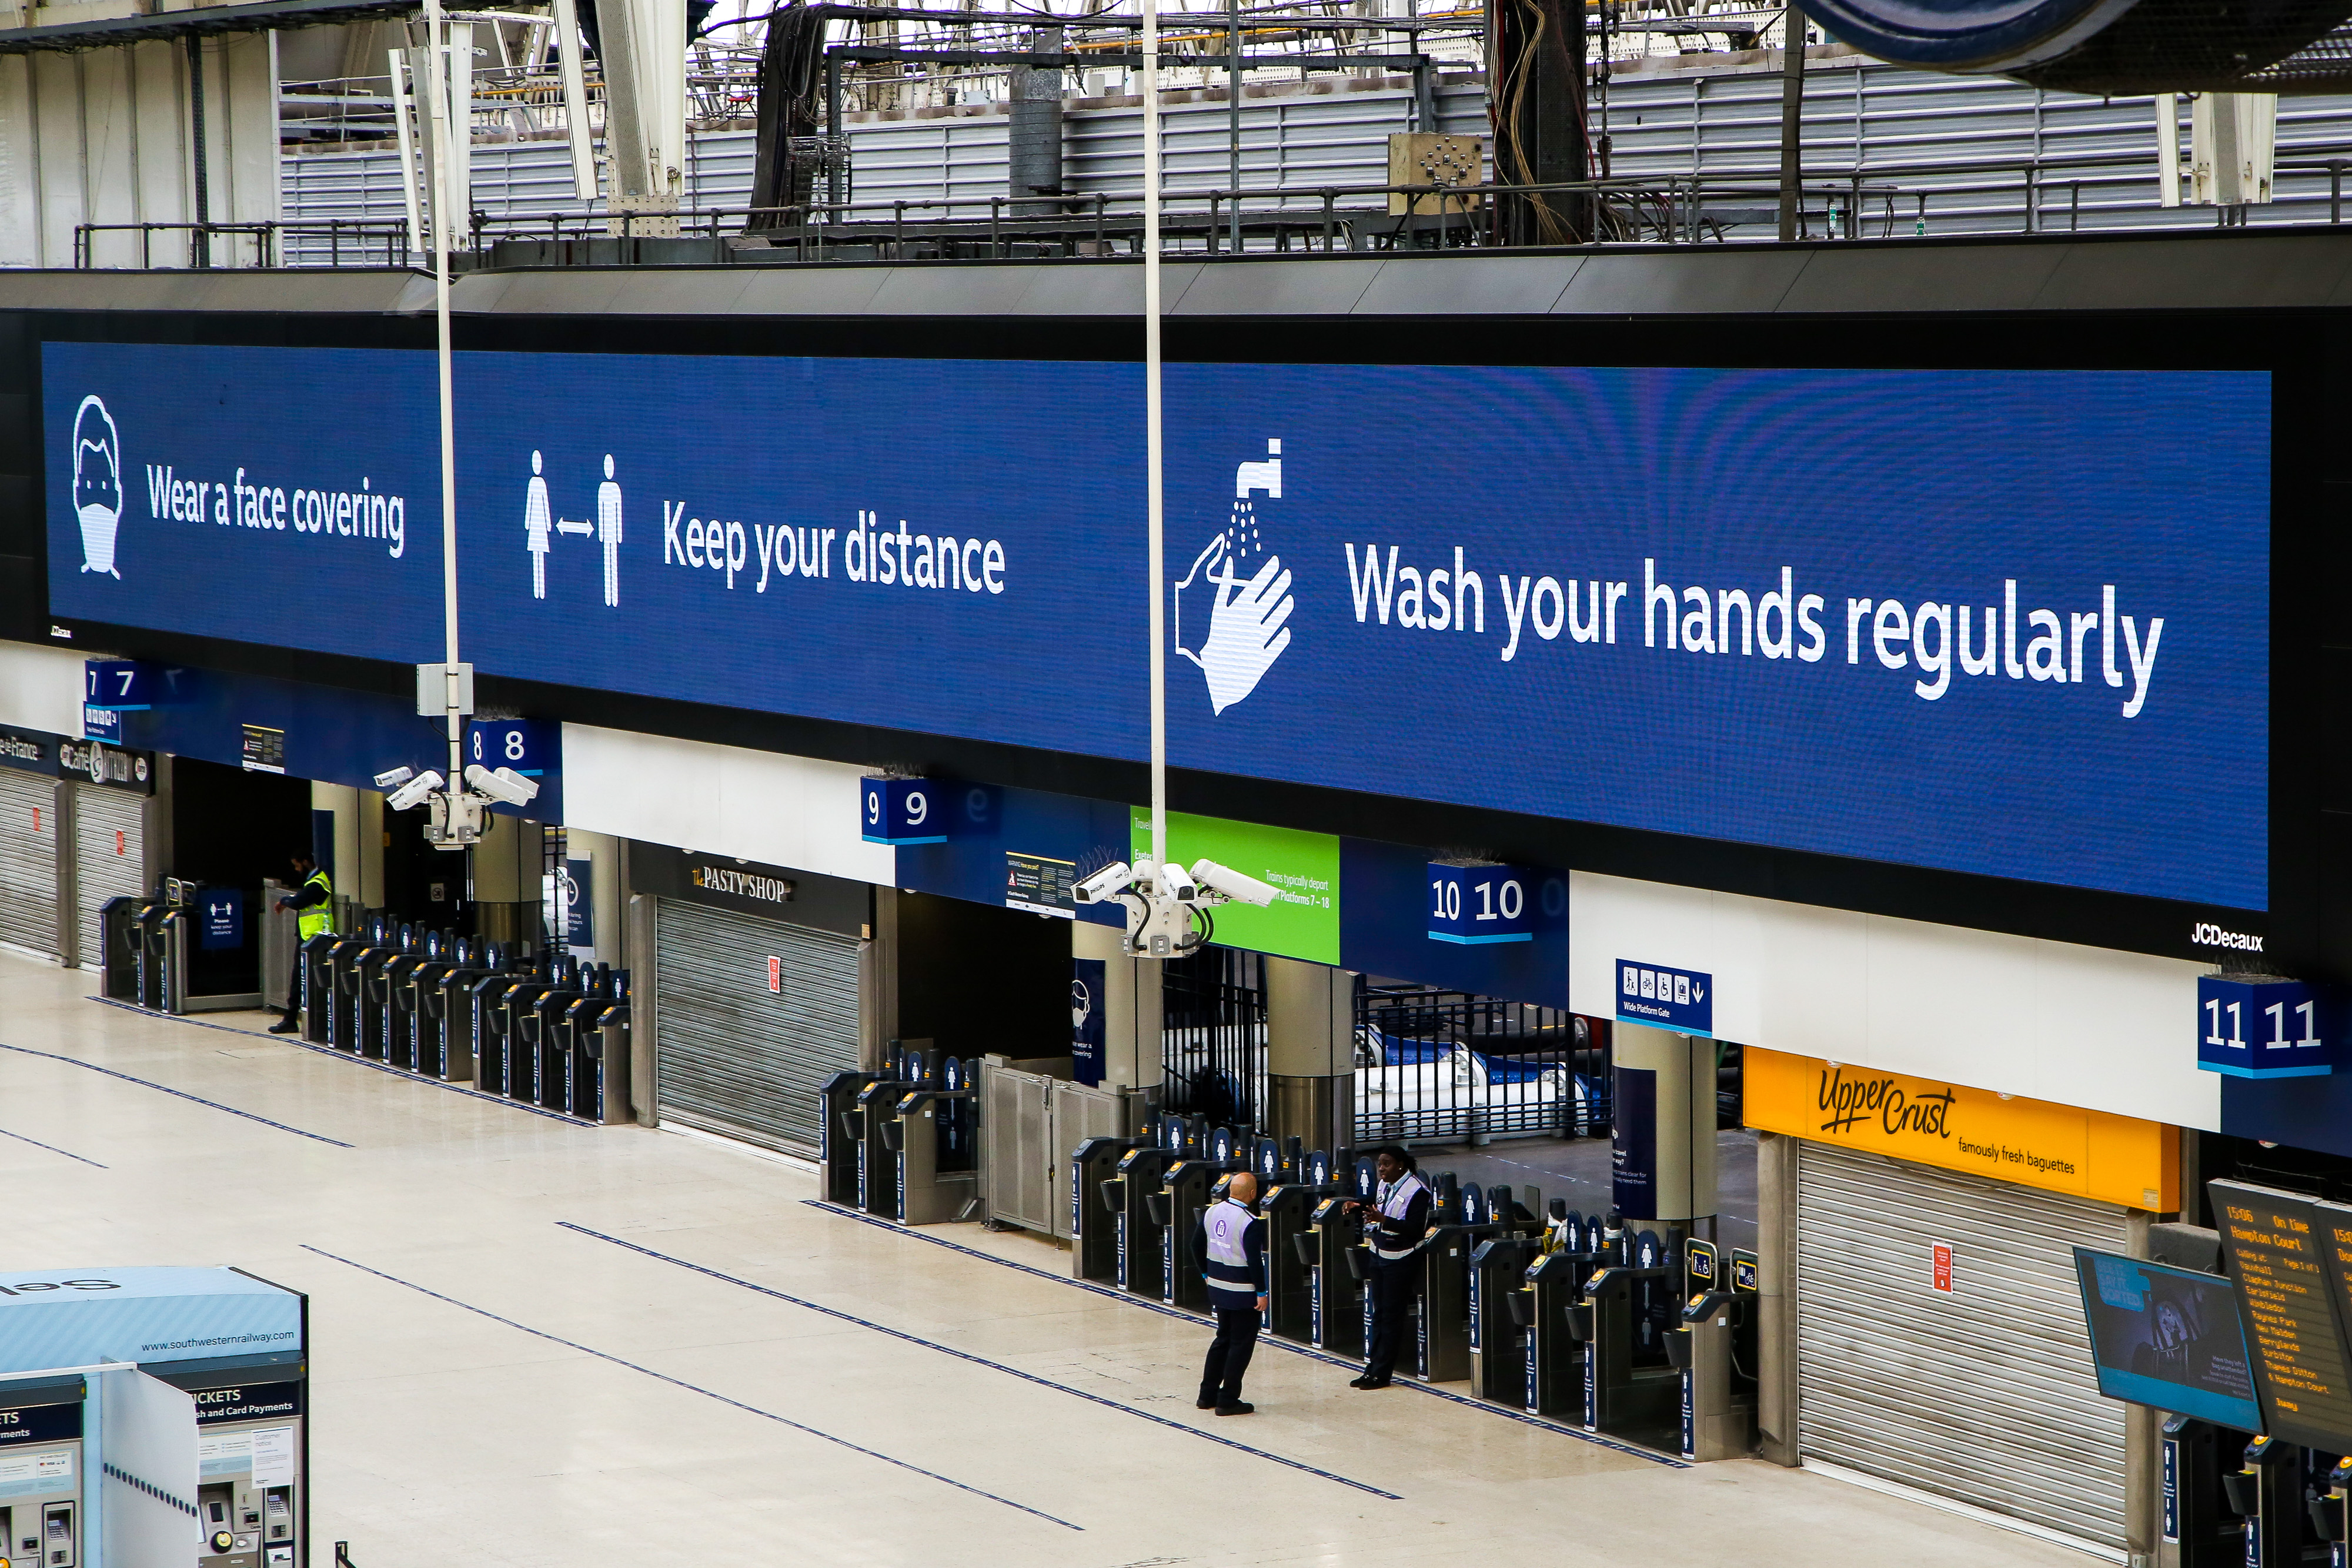 LONDON, UNITED KINGDOM - 2020/06/05: Wear a face covering. Keep your distance. Wash your hands regularly is displayed on a Coronavirus public information campaign poster at London Waterloo Station. (Photo by Dinendra Haria/SOPA Images/LightRocket via Getty Images)